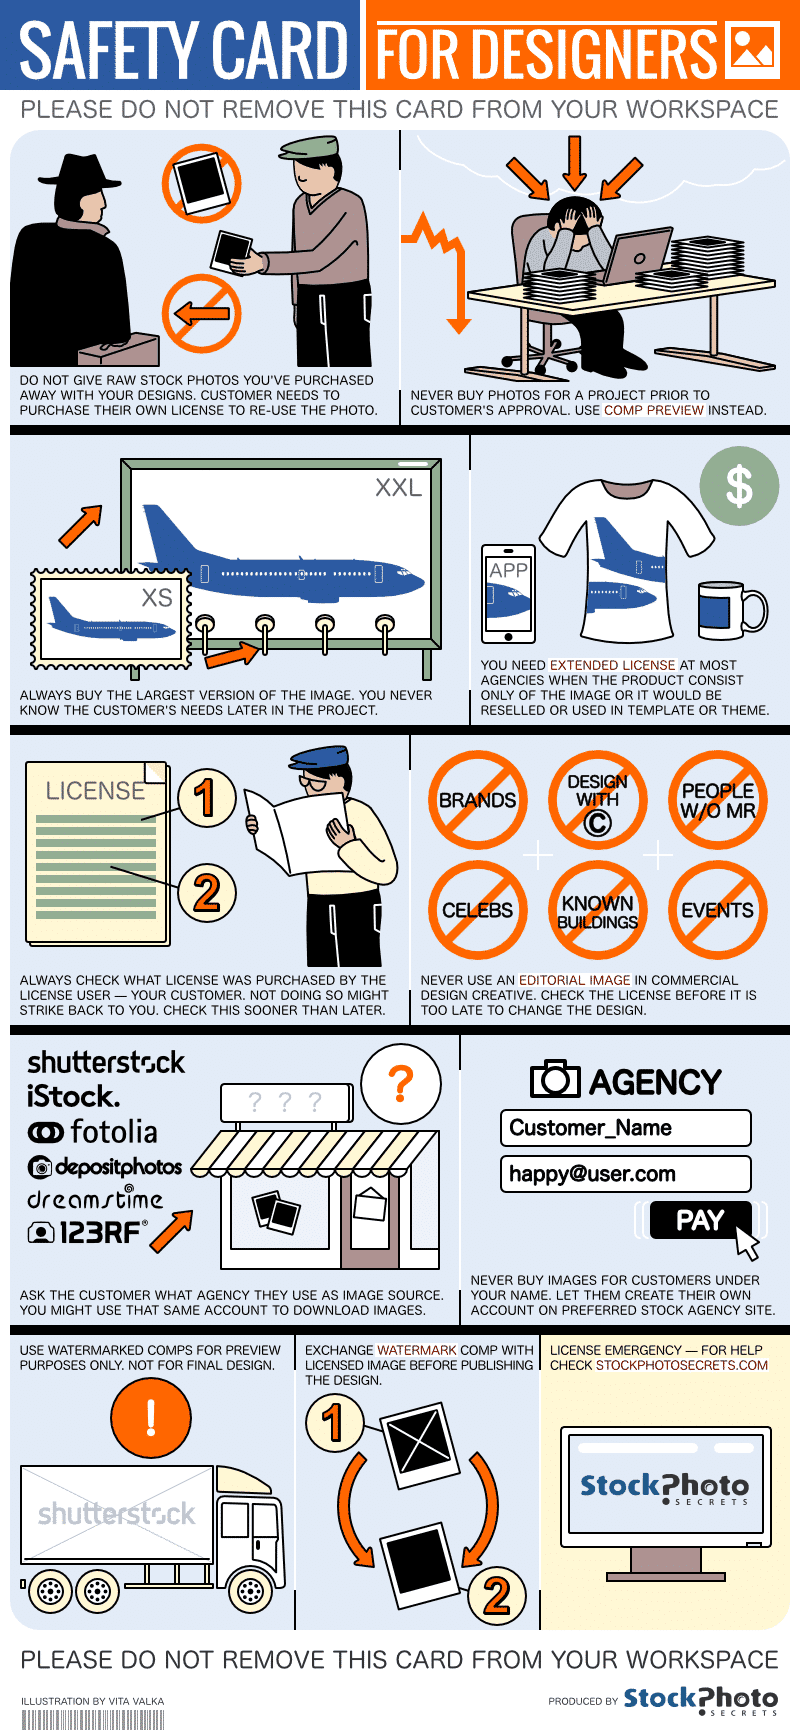 Stock Photo Safety Card Infographic from StockPhotoSecrets